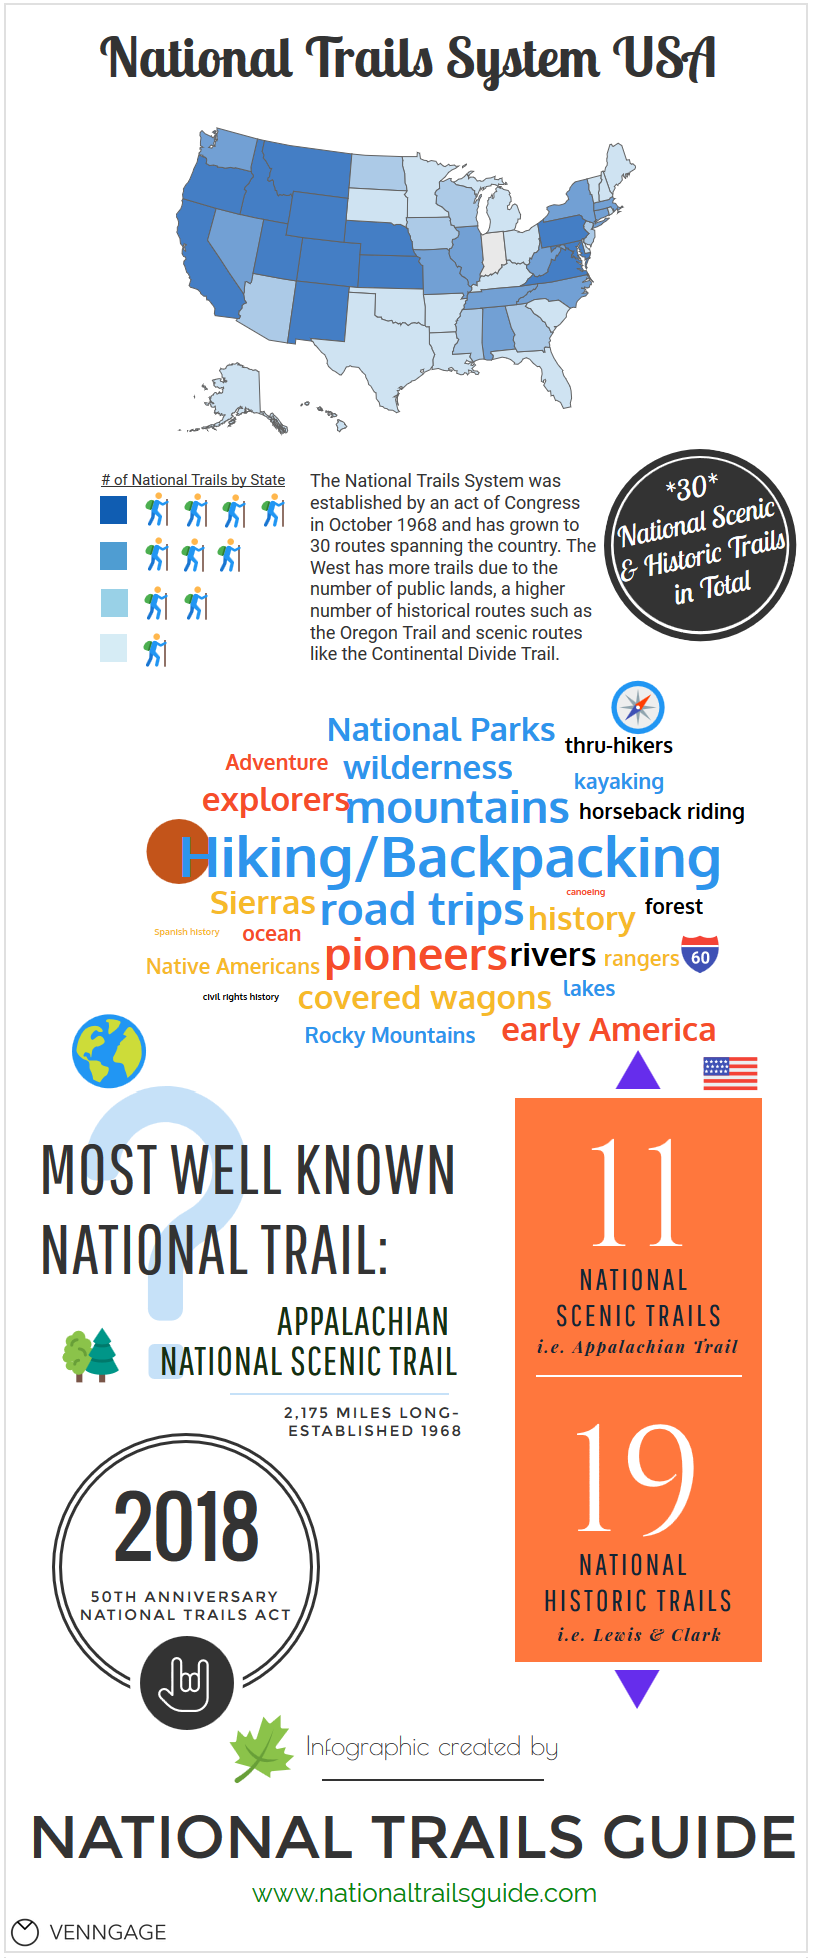 National Trails Guide infographic 2015